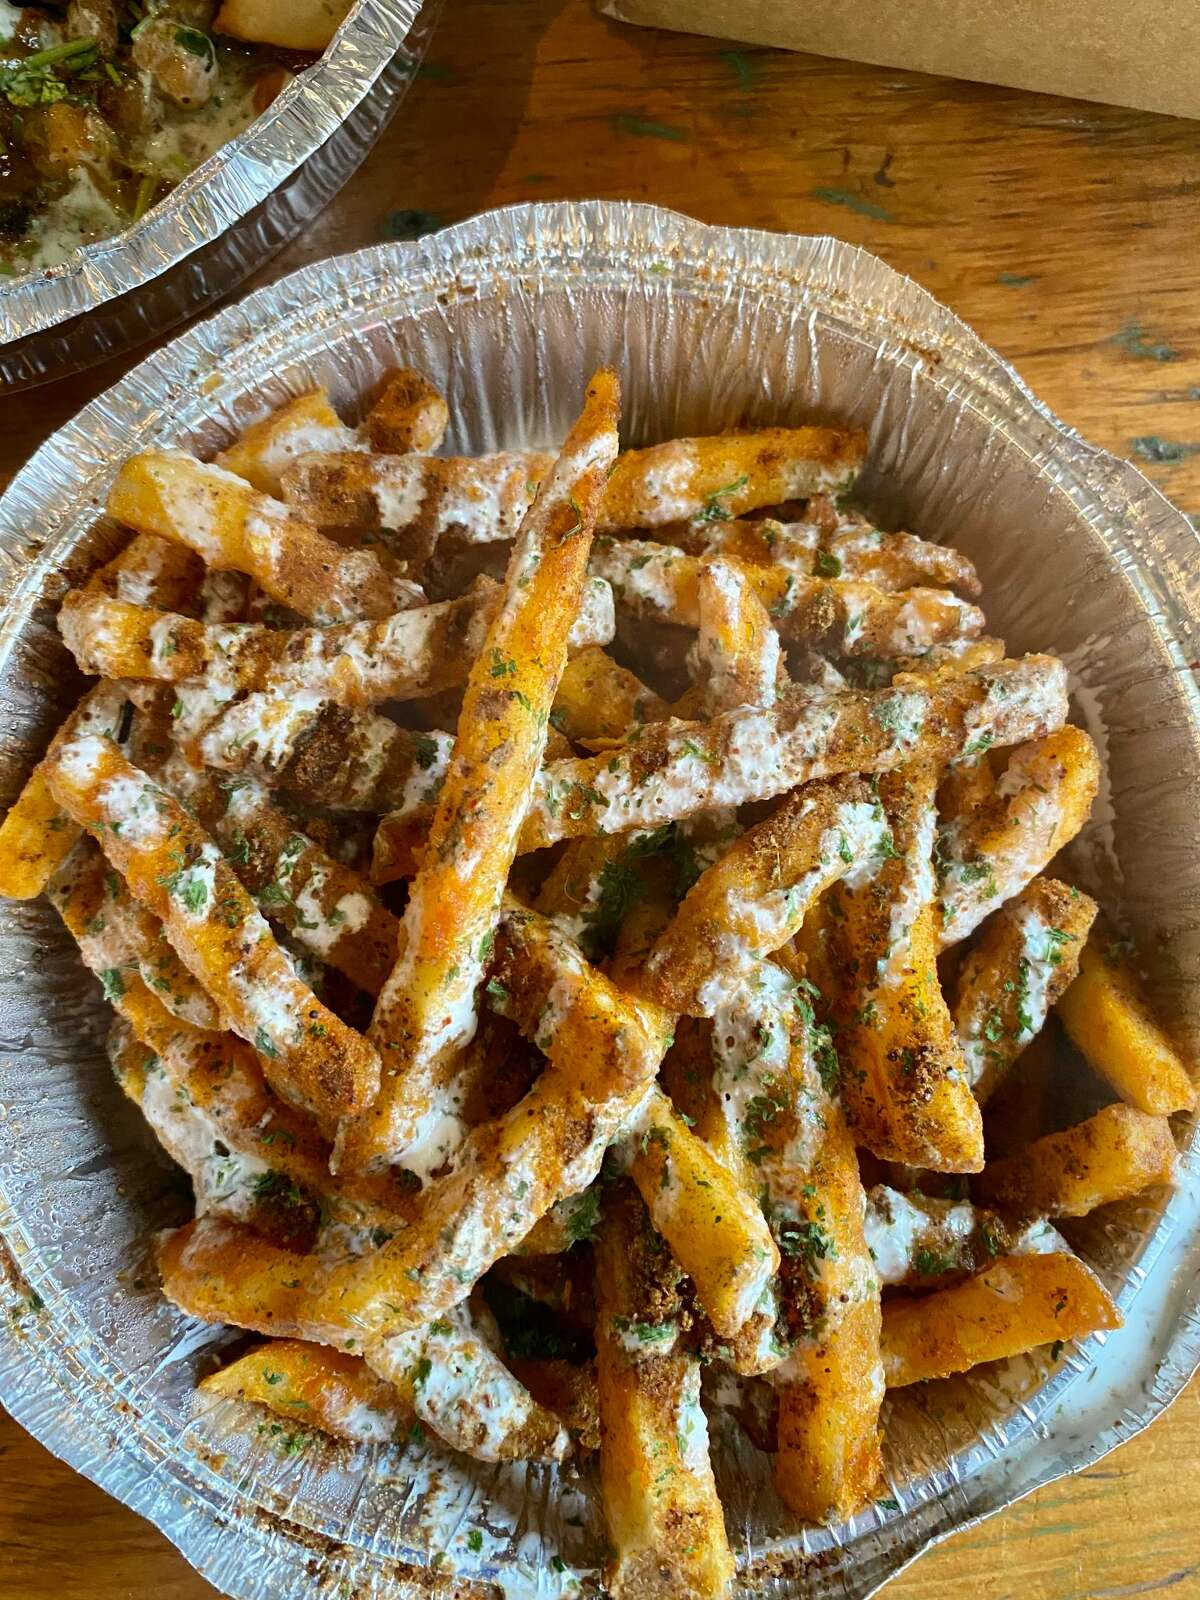 Masala Fries at Alif Cafe in Glens Falls are topped with chaat masala, raita, tamarind chutney and mint chutney. (Susie Davidson Powell/for the Times Union.)